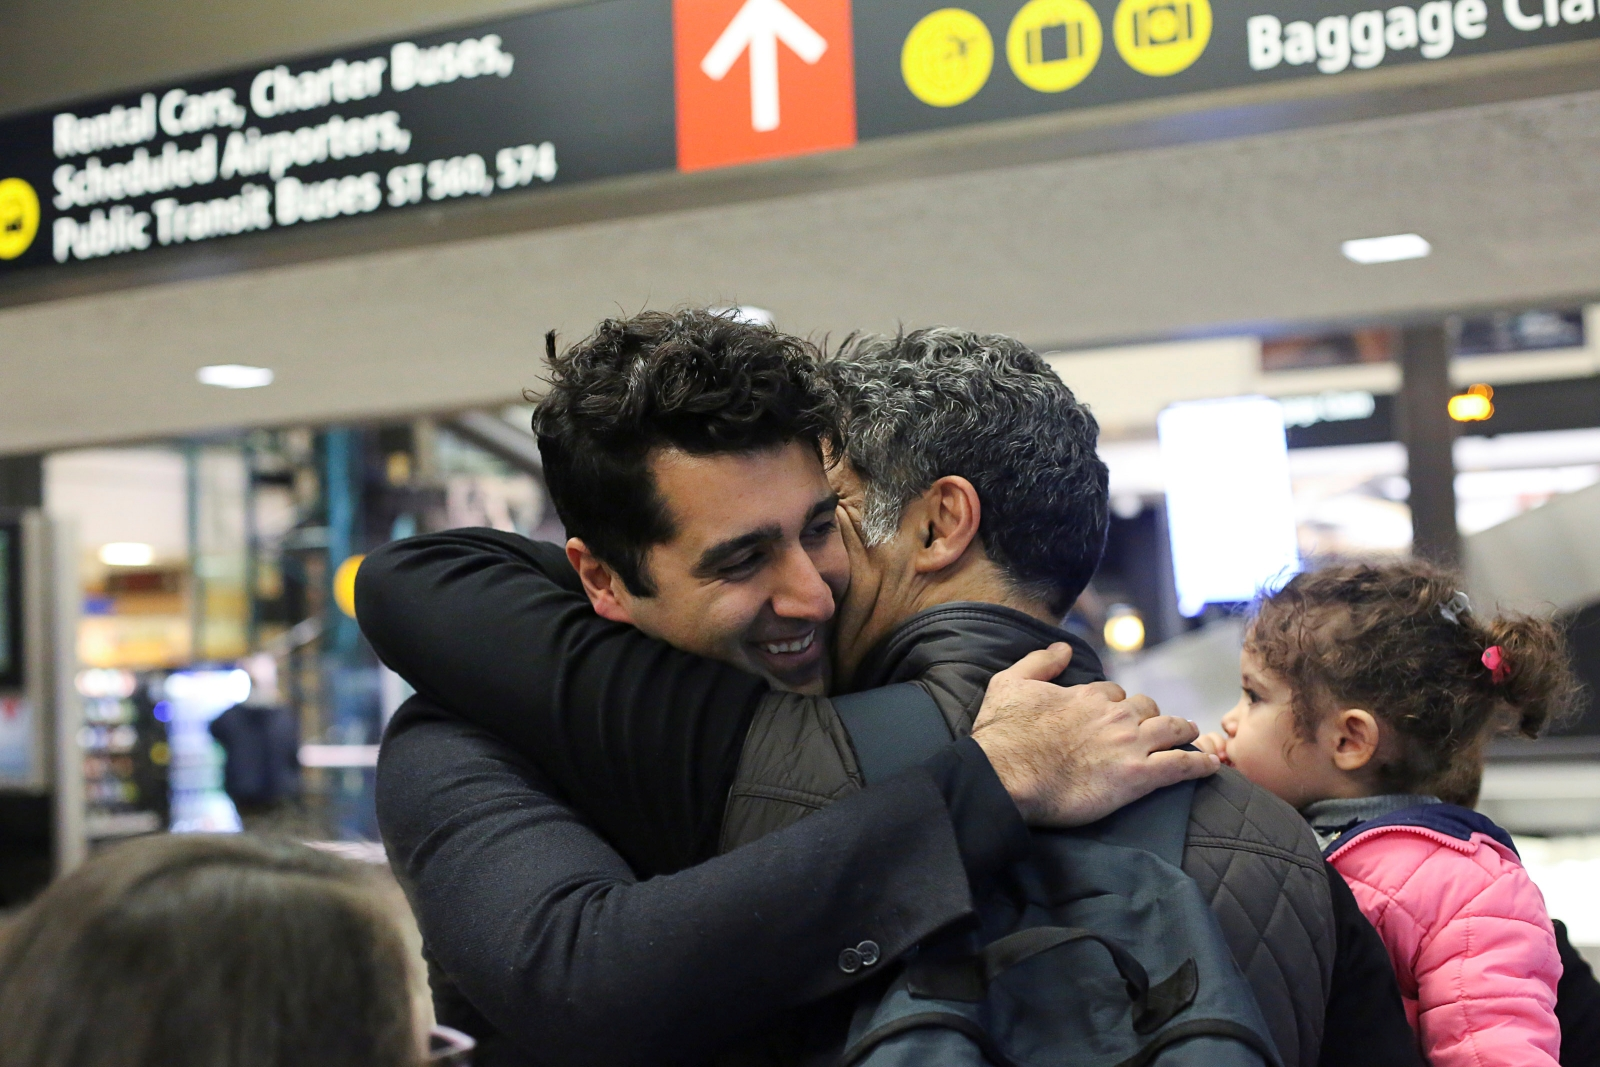 What will happen when Trump's travel ban is replaced